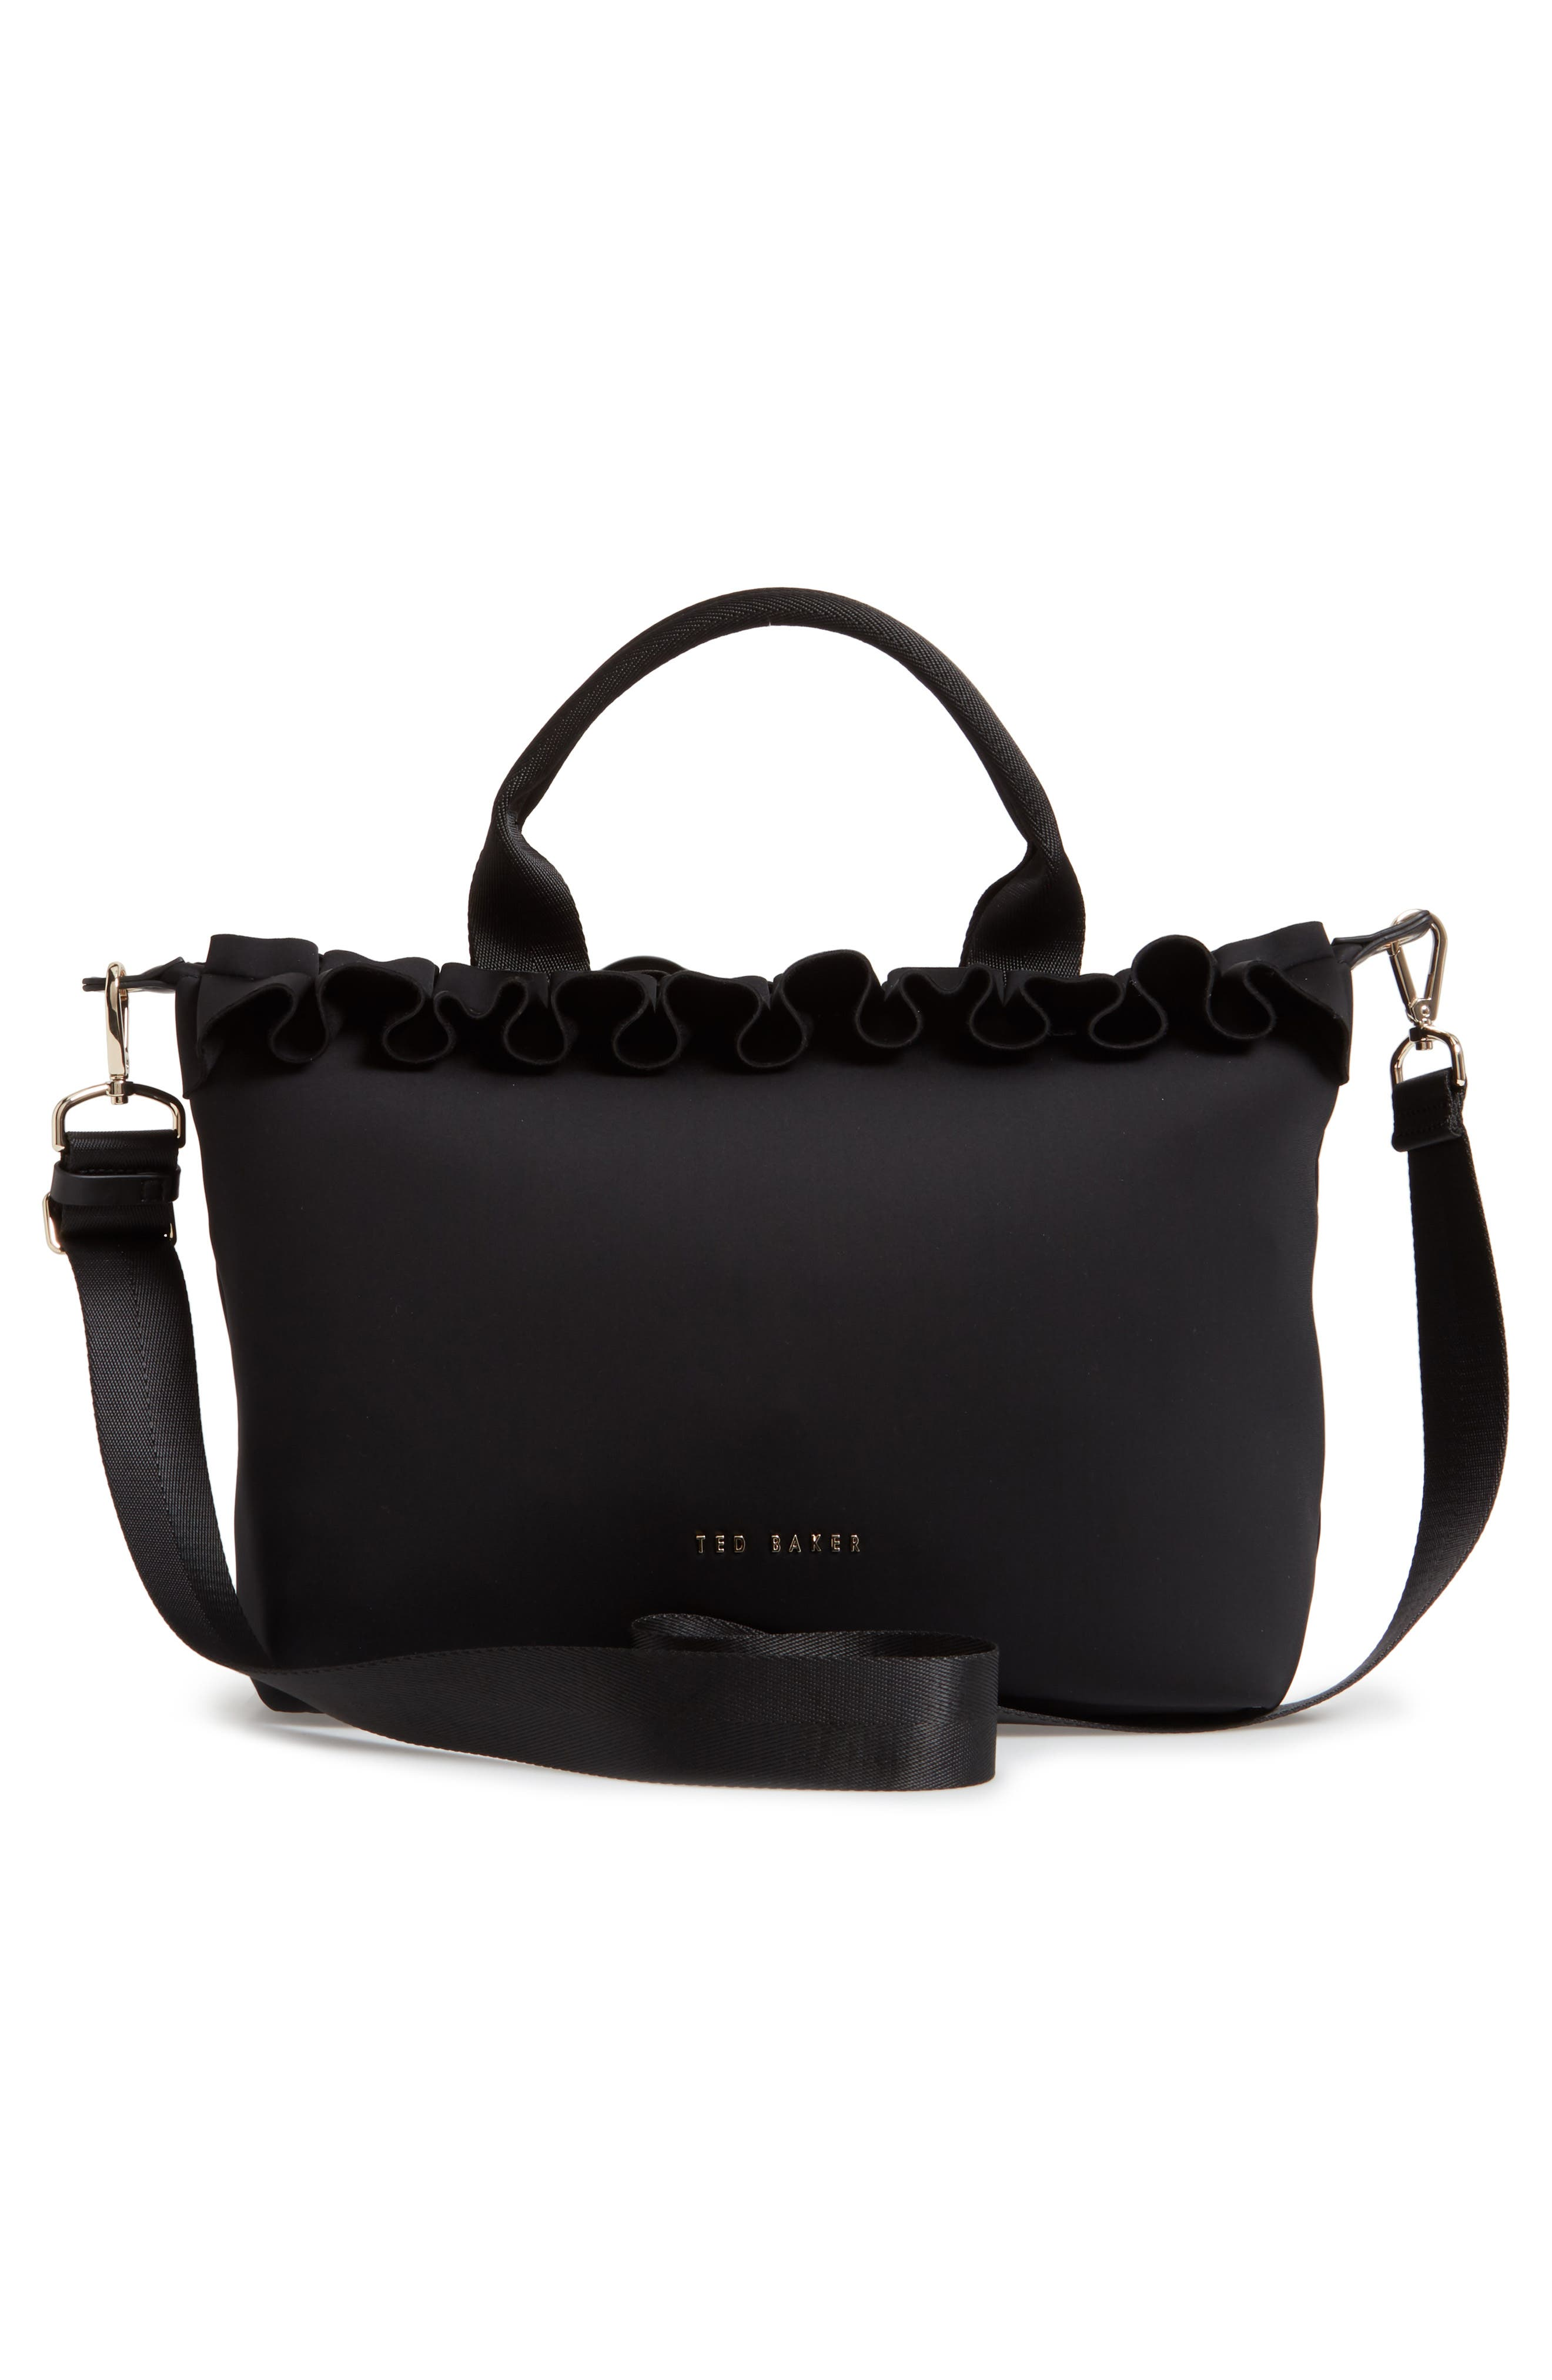 TED BAKER LONDON, Ryllee Ruffle Tote, Alternate thumbnail 4, color, 001